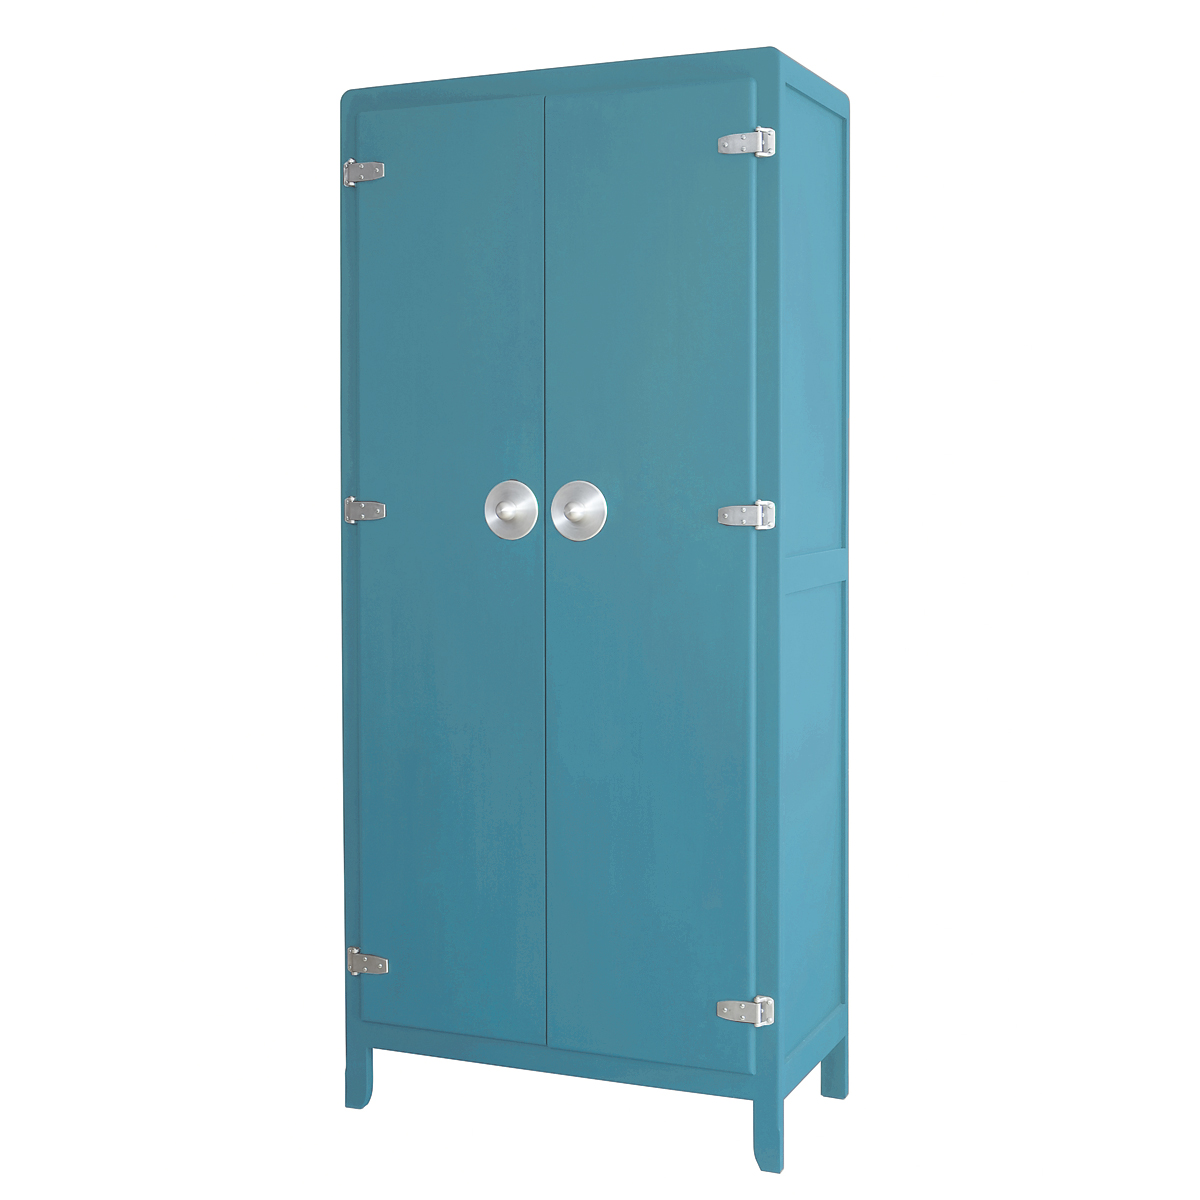 armoire chambre design chambre ado bleu turquoise et gris. Black Bedroom Furniture Sets. Home Design Ideas